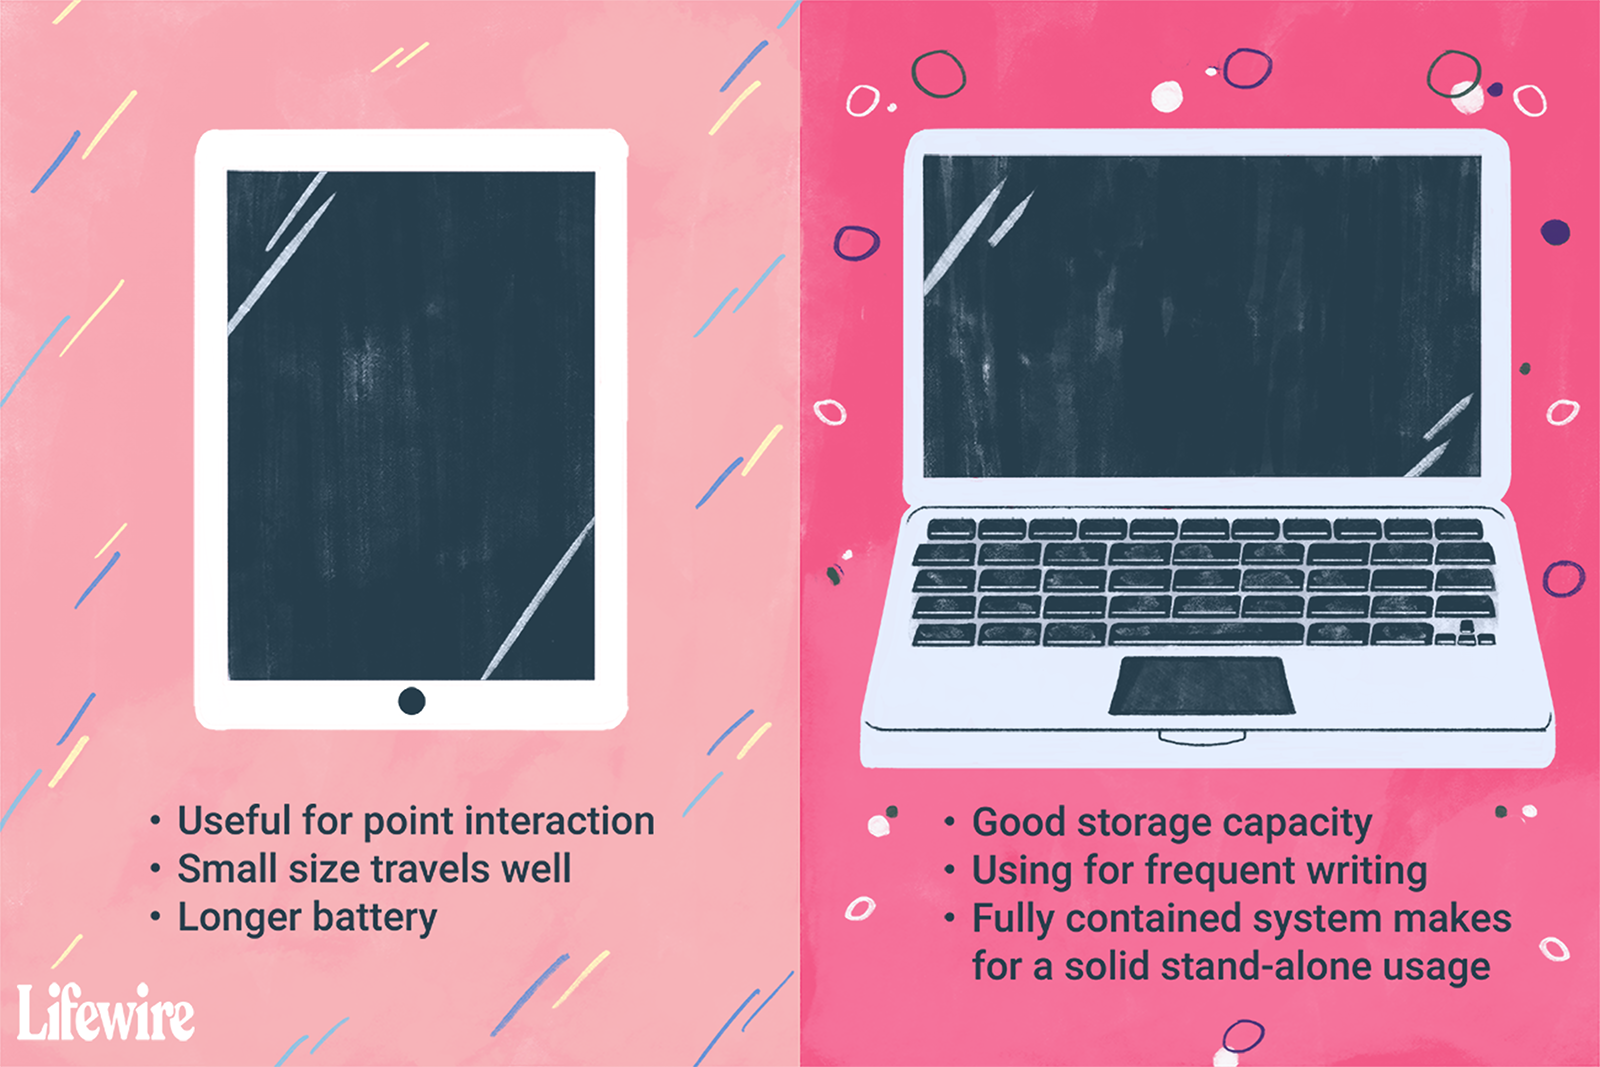 An illustration of a laptop and a tablet with the differences between them listed.